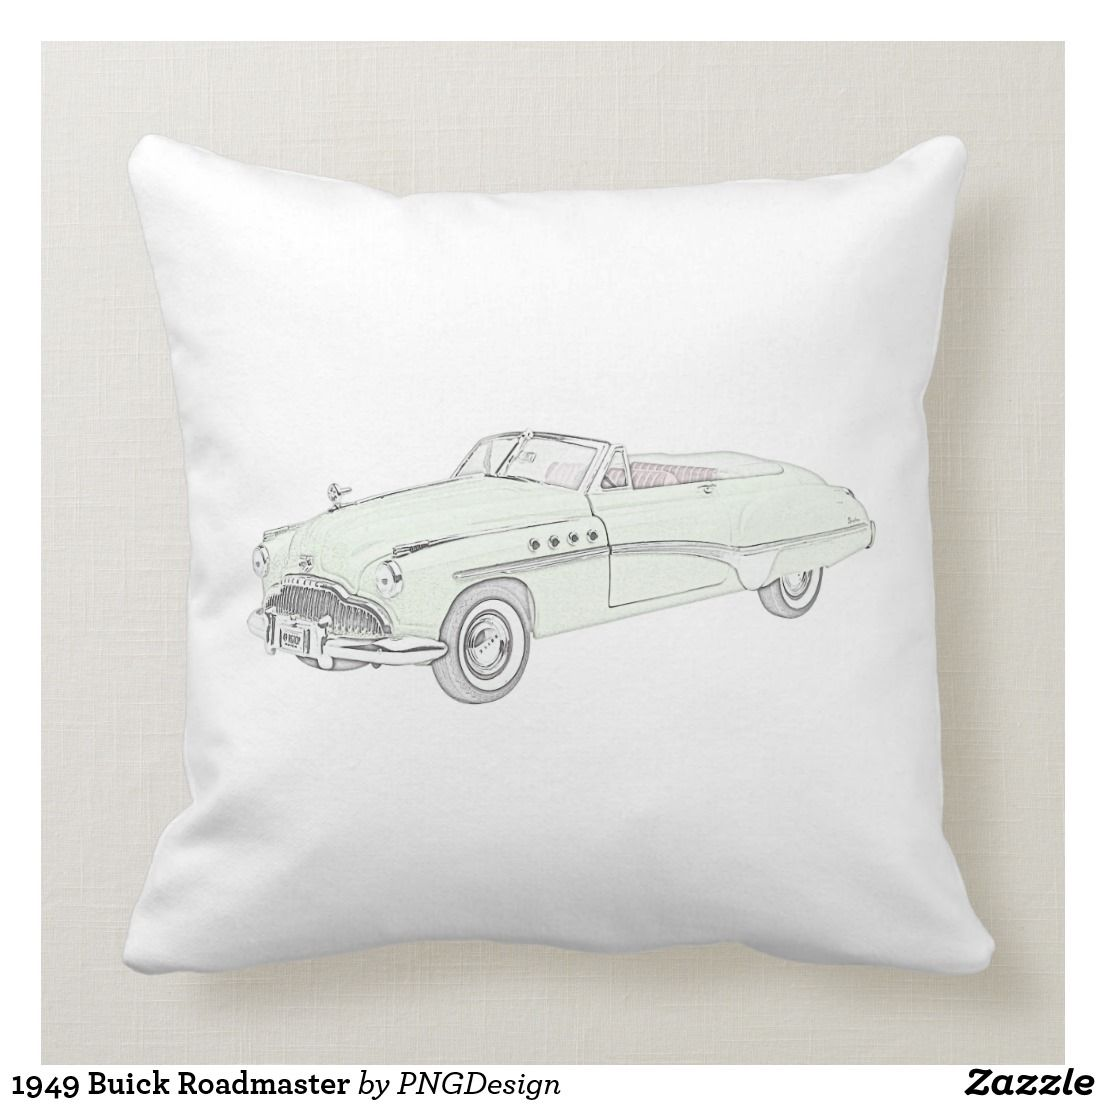 1949 Buick Roadmaster Throw Pillow Pillows Throw Pillows